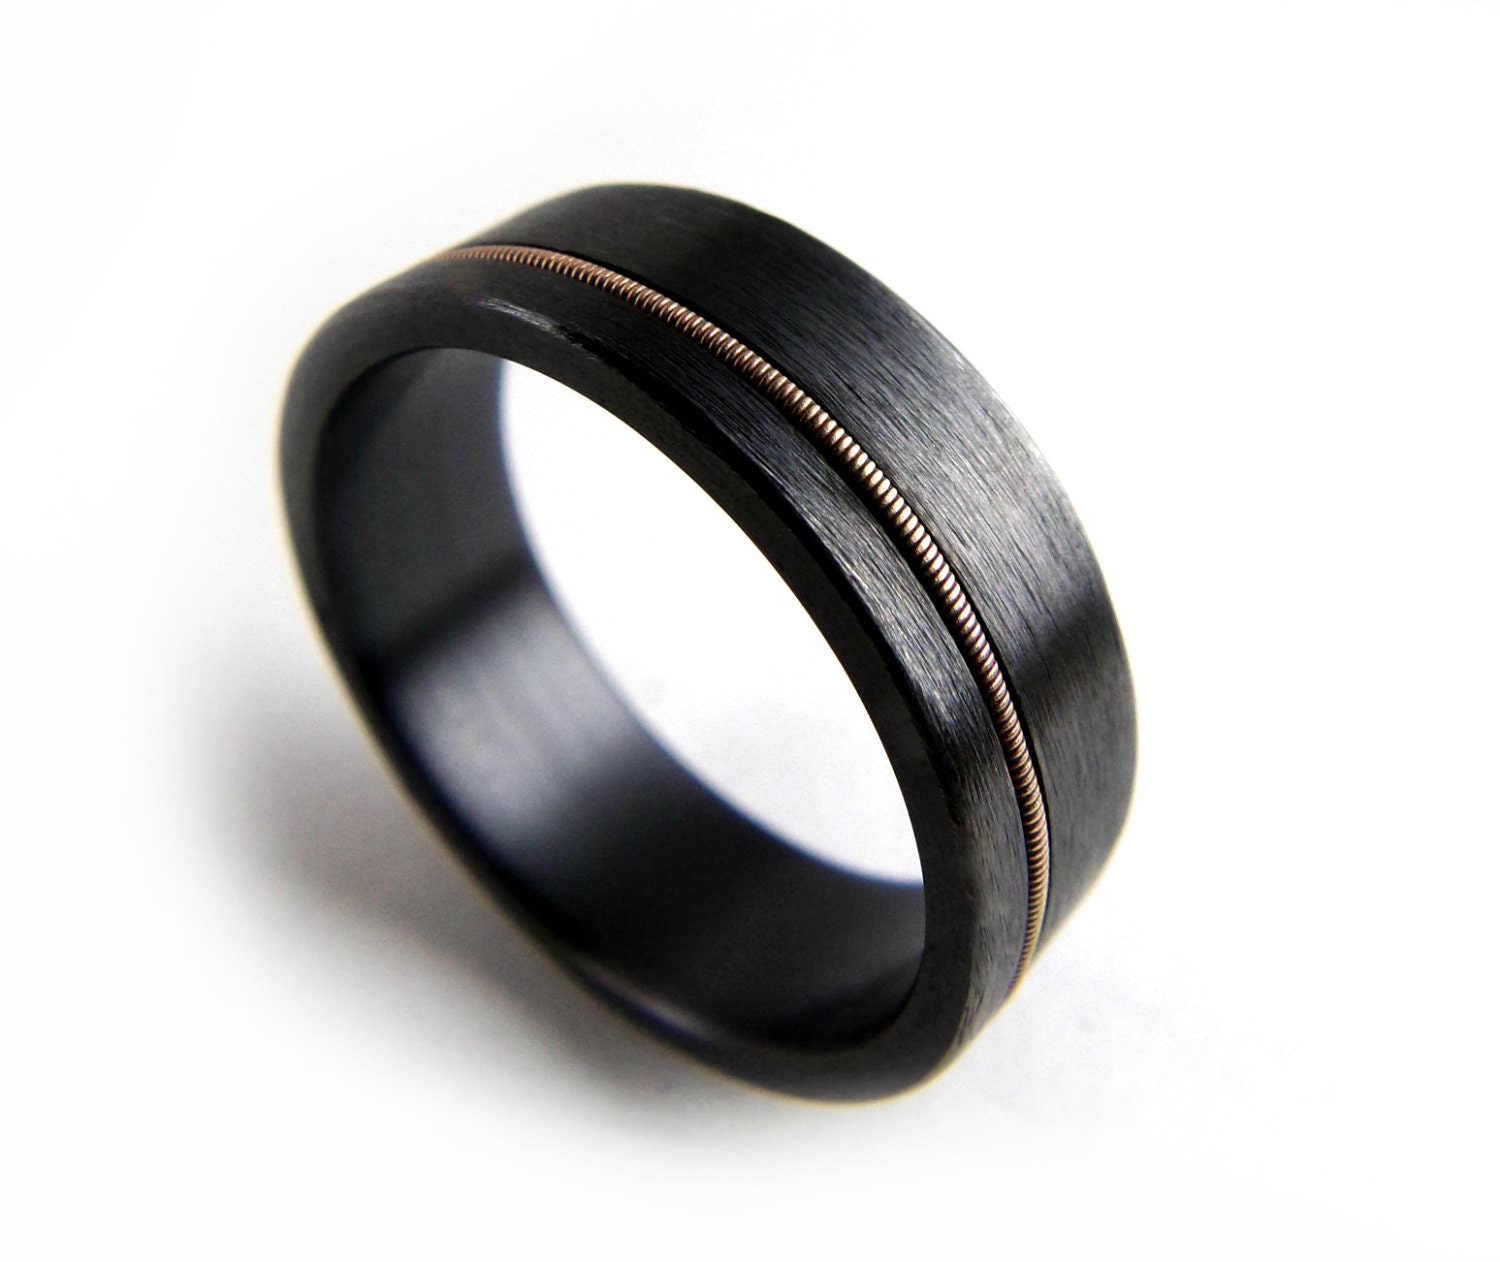 black zirconium ring guitar string ring black metal ring guitar string jewelry - Black Wedding Rings For Men